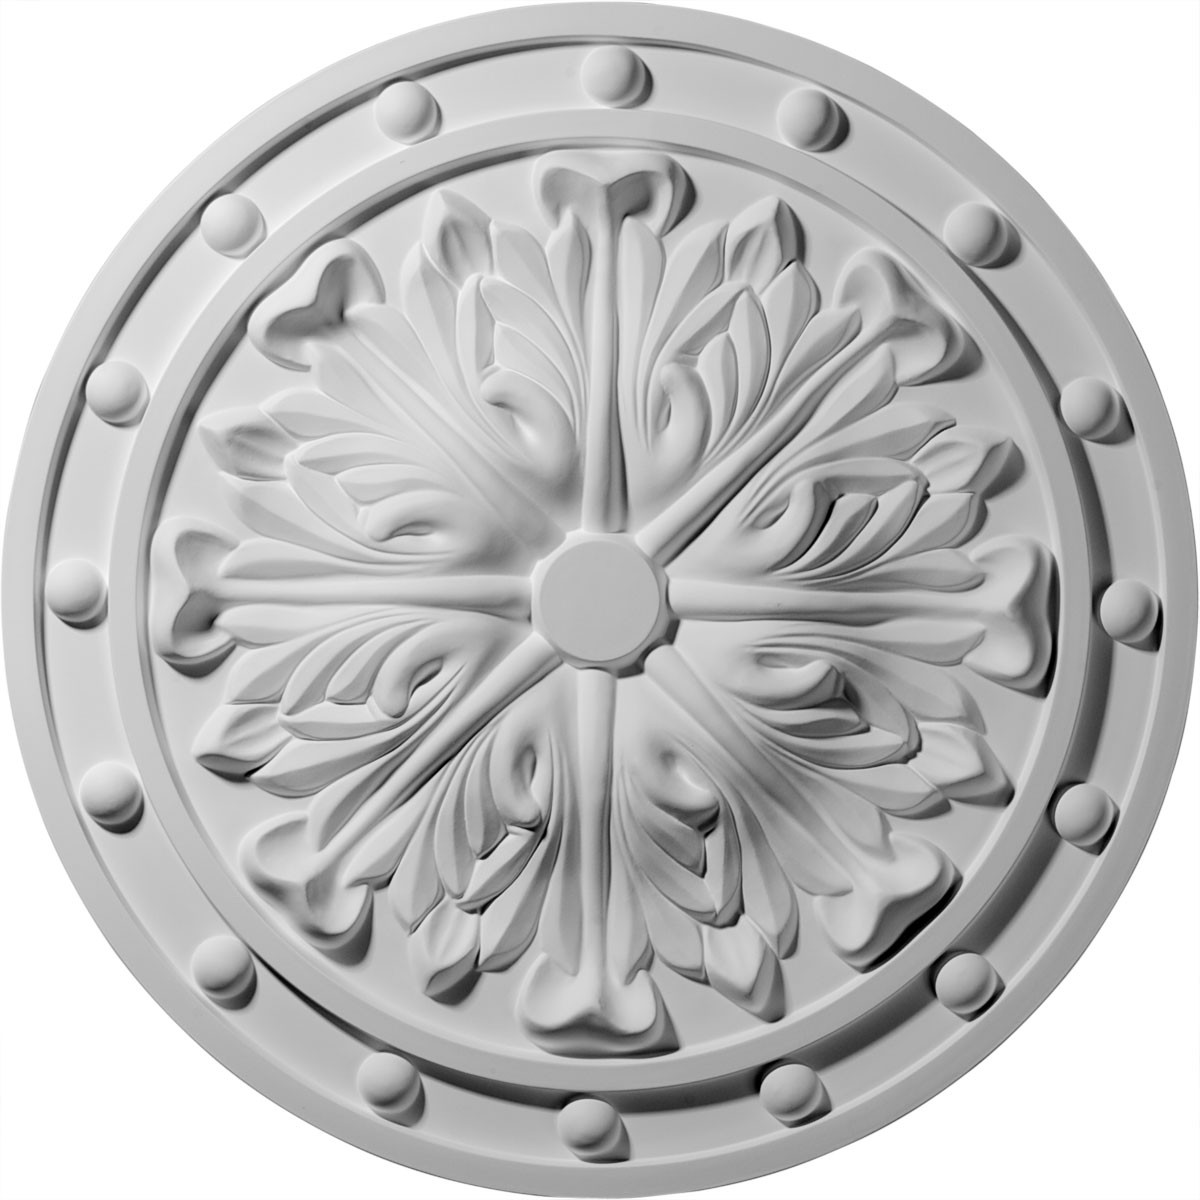 "EM-CM20FO - 20 1/2""OD x 1 1/2""P Foster Acanthus Leaf Ceiling Medallion (Fits Canopies up to 2 1/4"")"